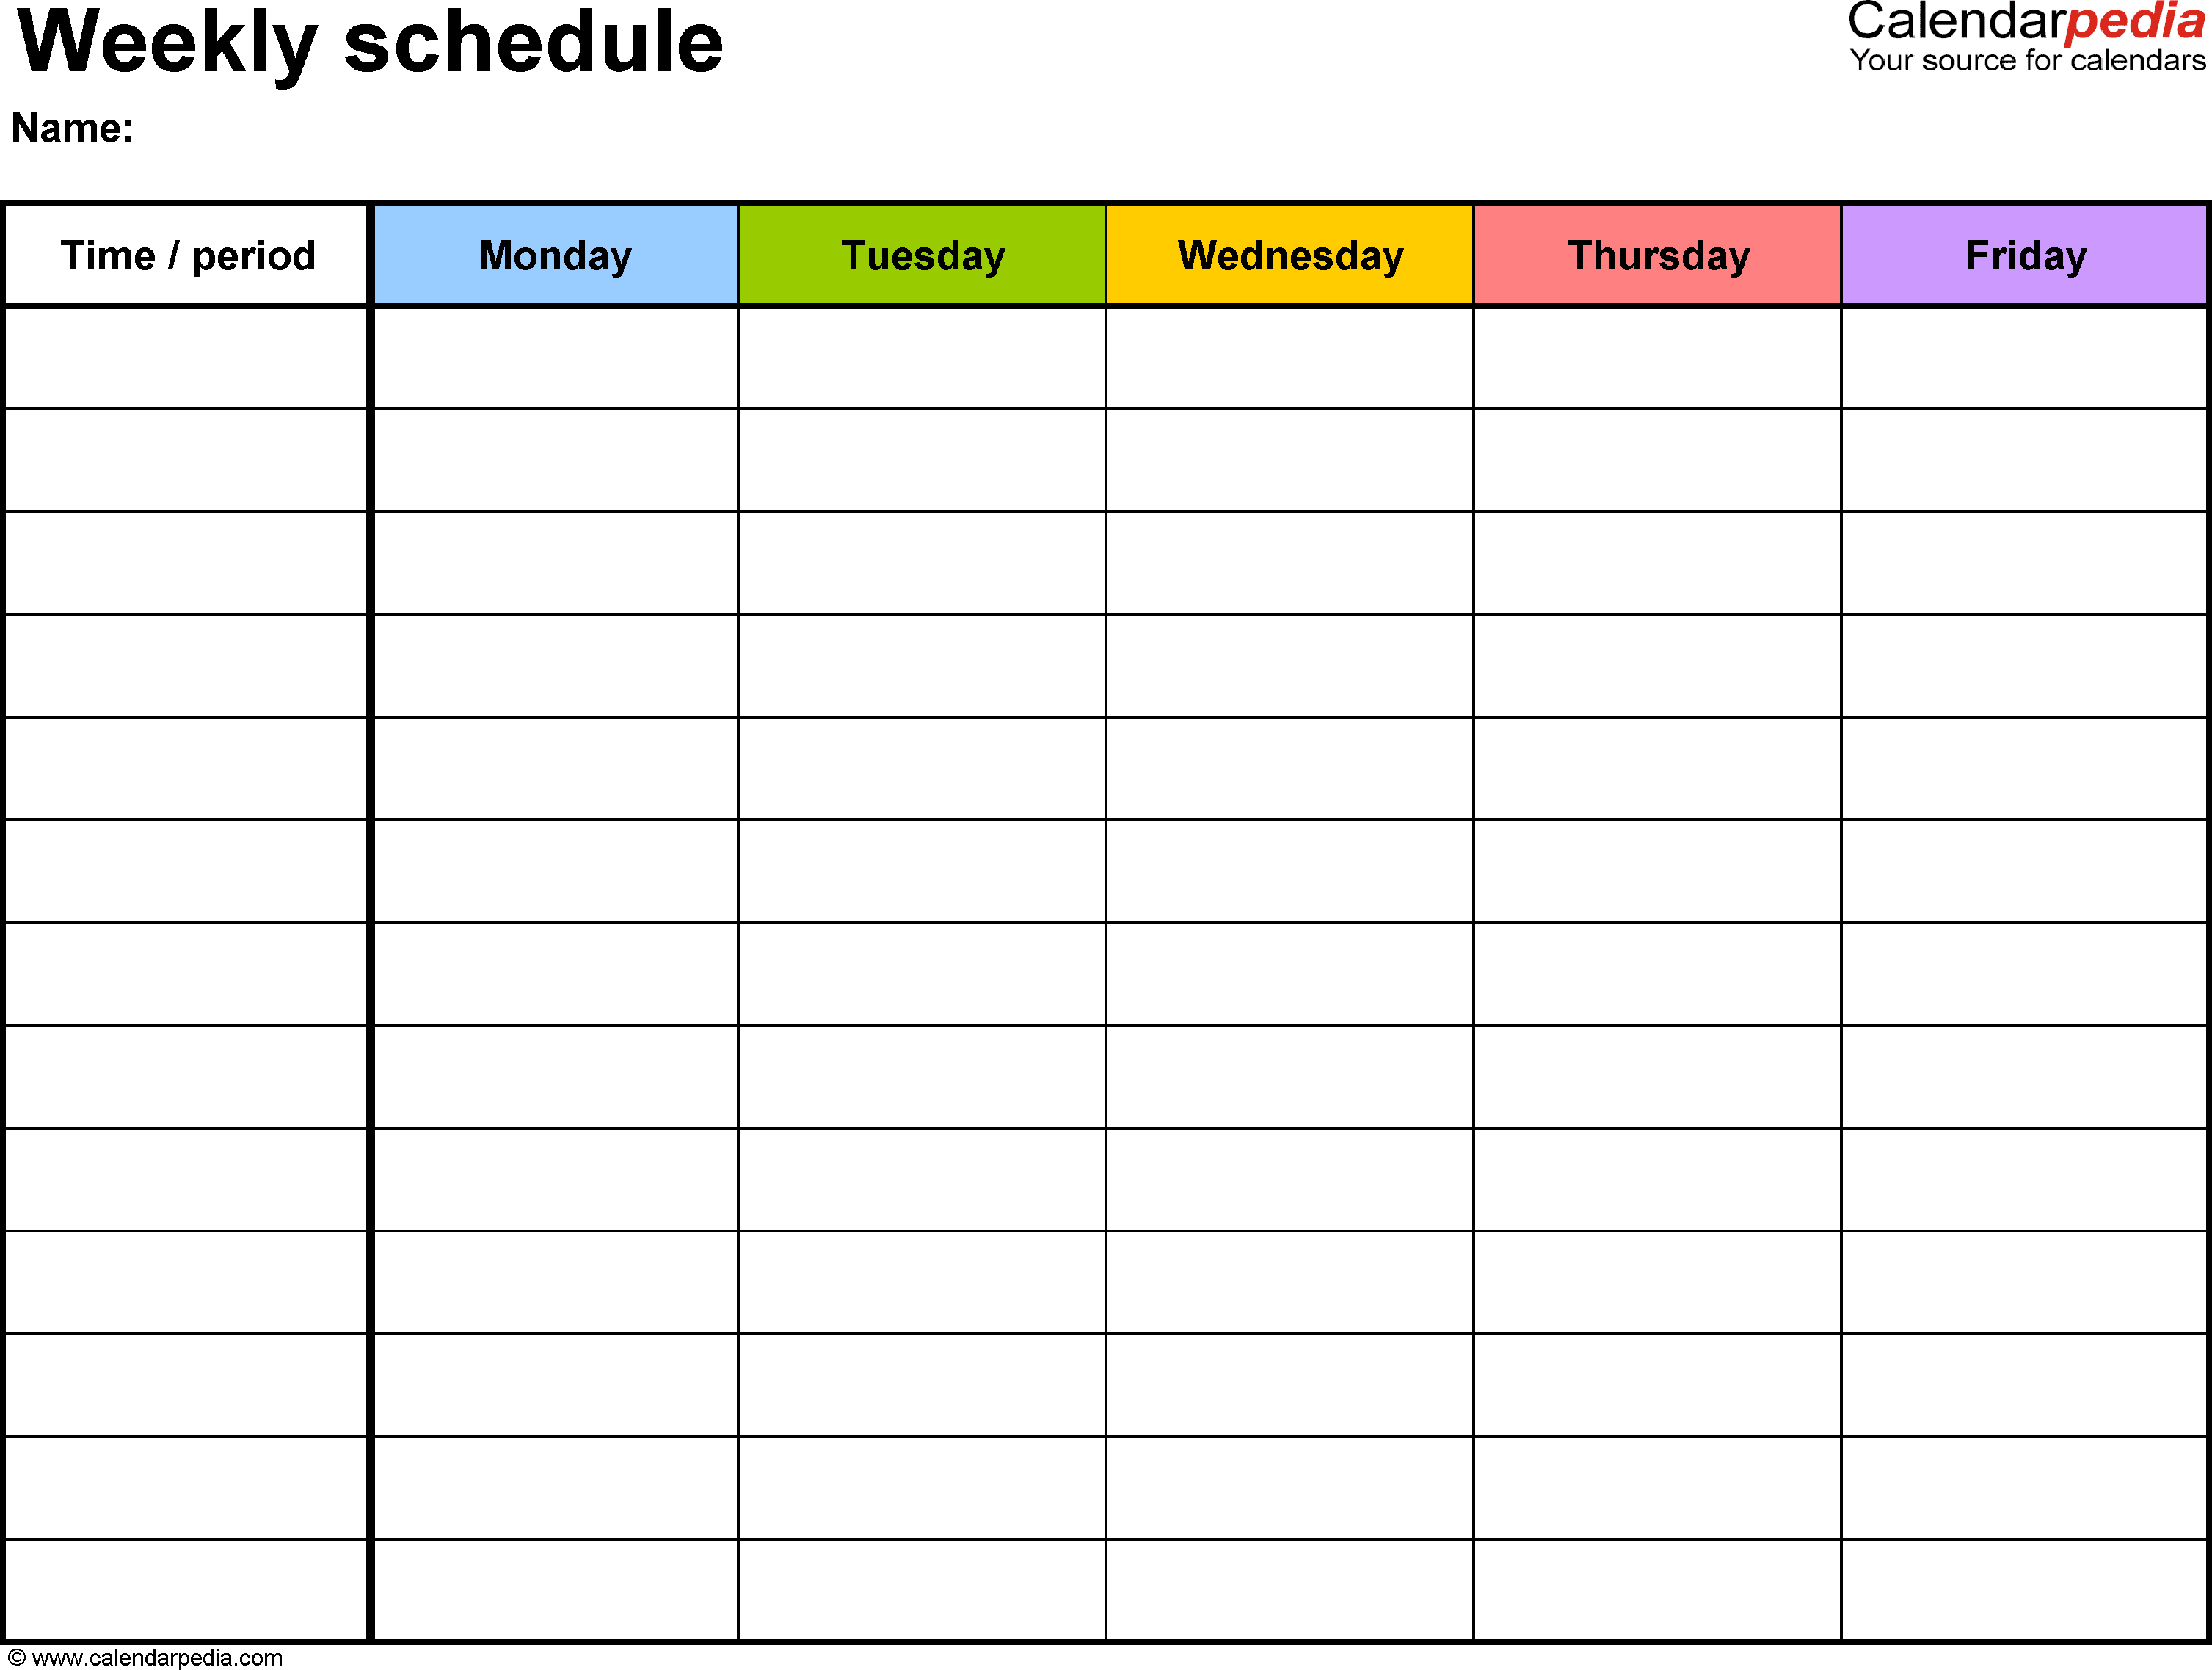 Free Weekly Schedule Templates For Word - 18 Templates - Free Printable Weekly Work Schedule